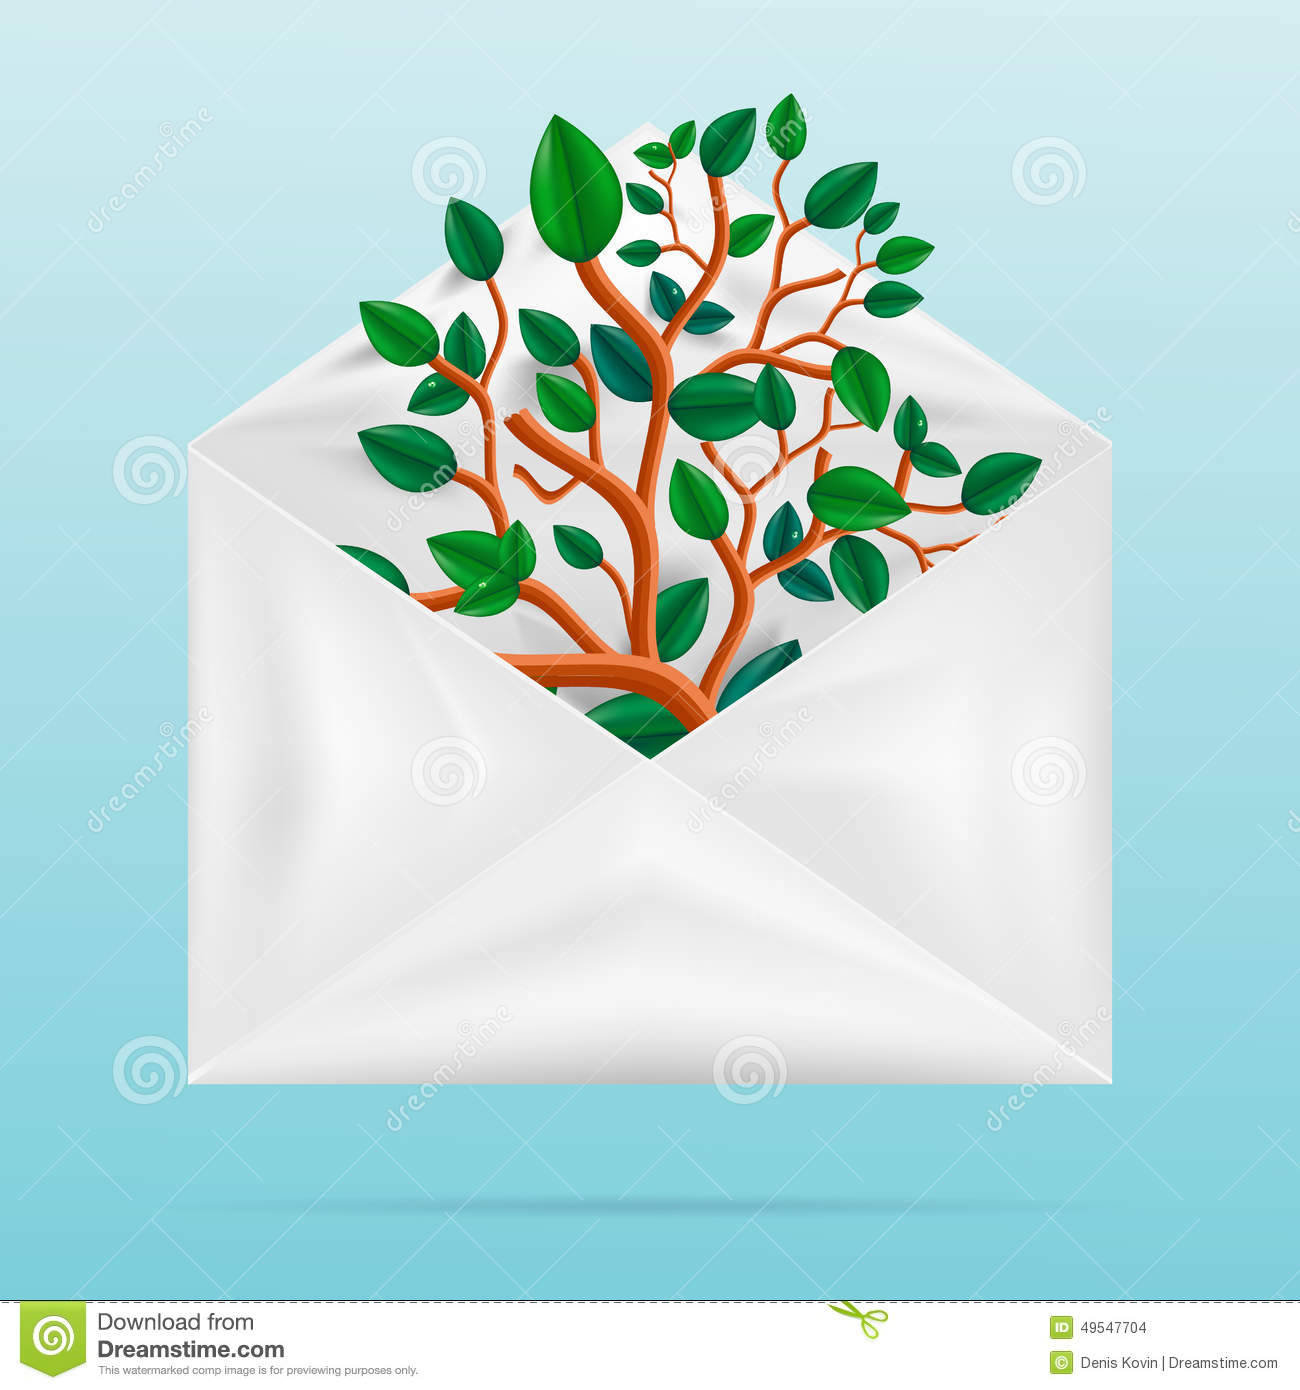 Eco concept. Green tree in paper envelope.